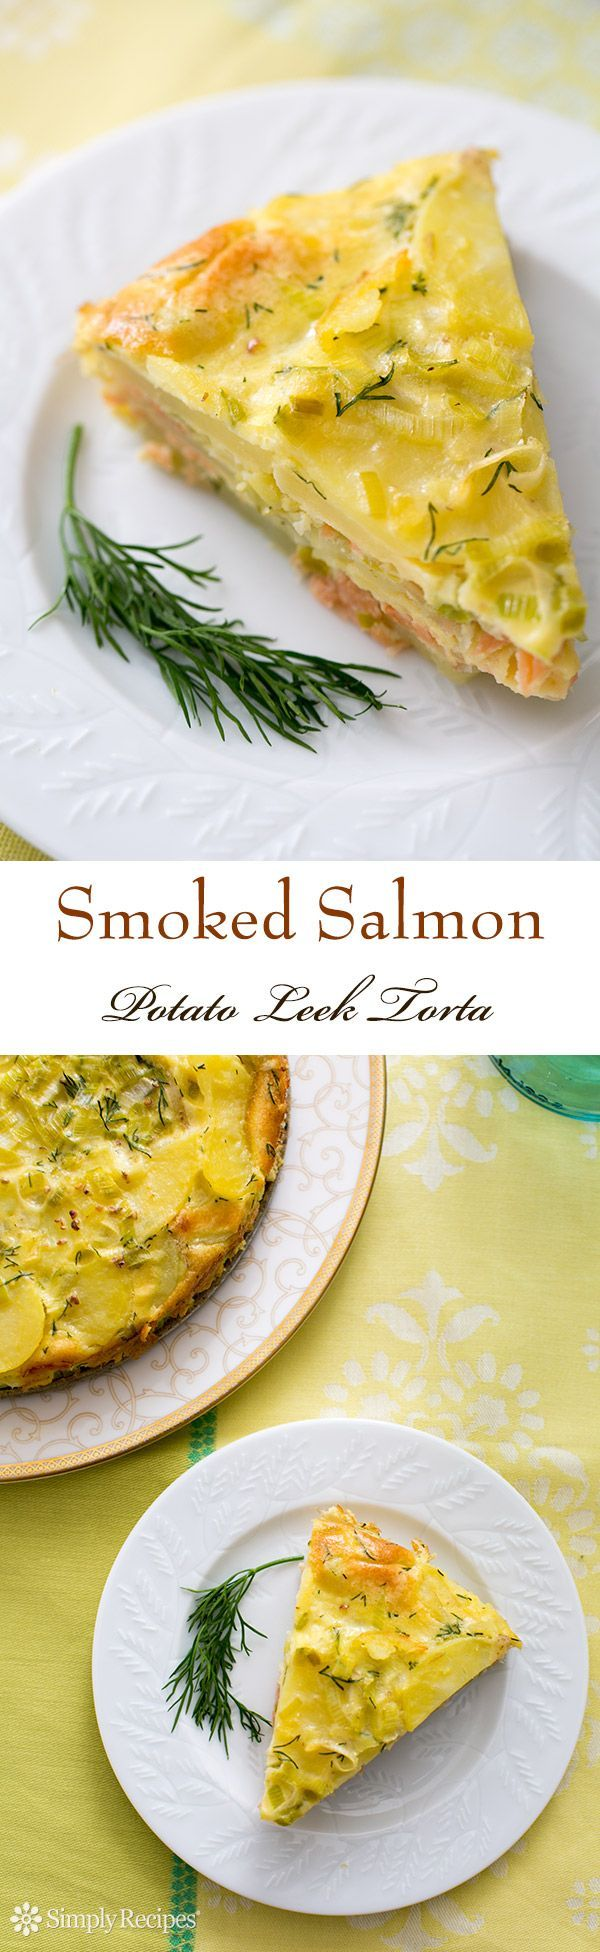 Smoked Salmon Potato Leek Torta ~ Delicious potato torta with Yukon Gold potatoes, smoked salmon, leeks, dill, eggs, and cream. Perfect for a Sunday brunch! ~ SimplyRecipes.com